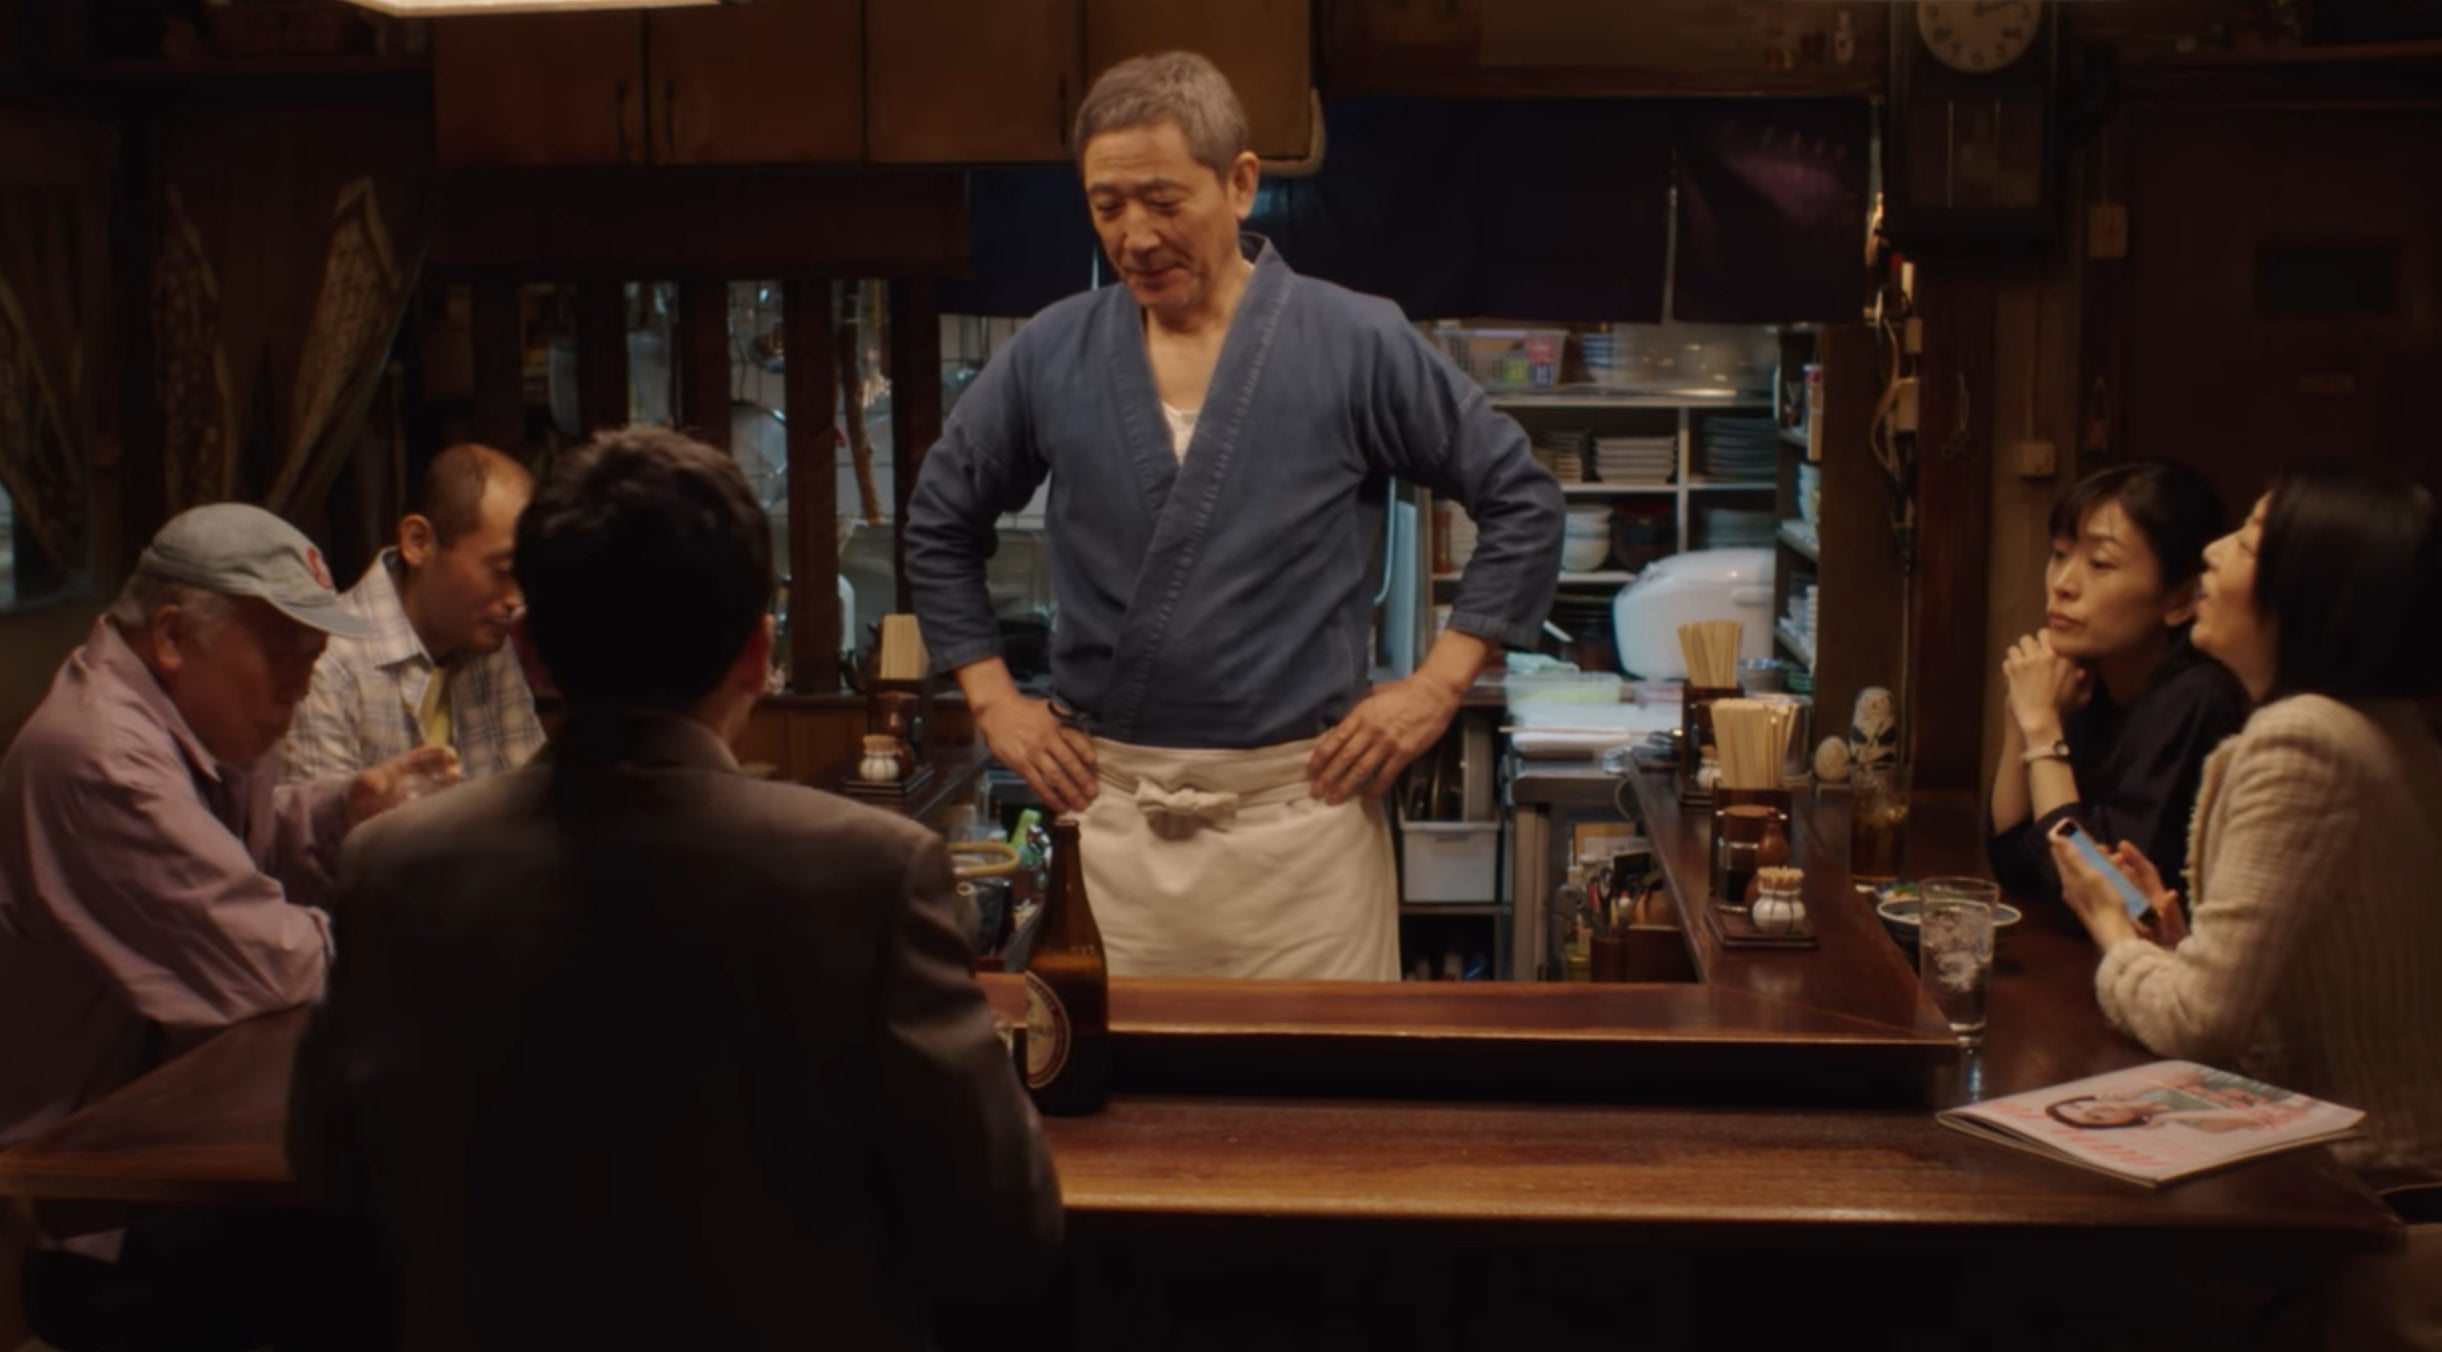 Midnight Diner's 'Chicken Fried Rice' Episode Combines Good Food, Video Games And Family